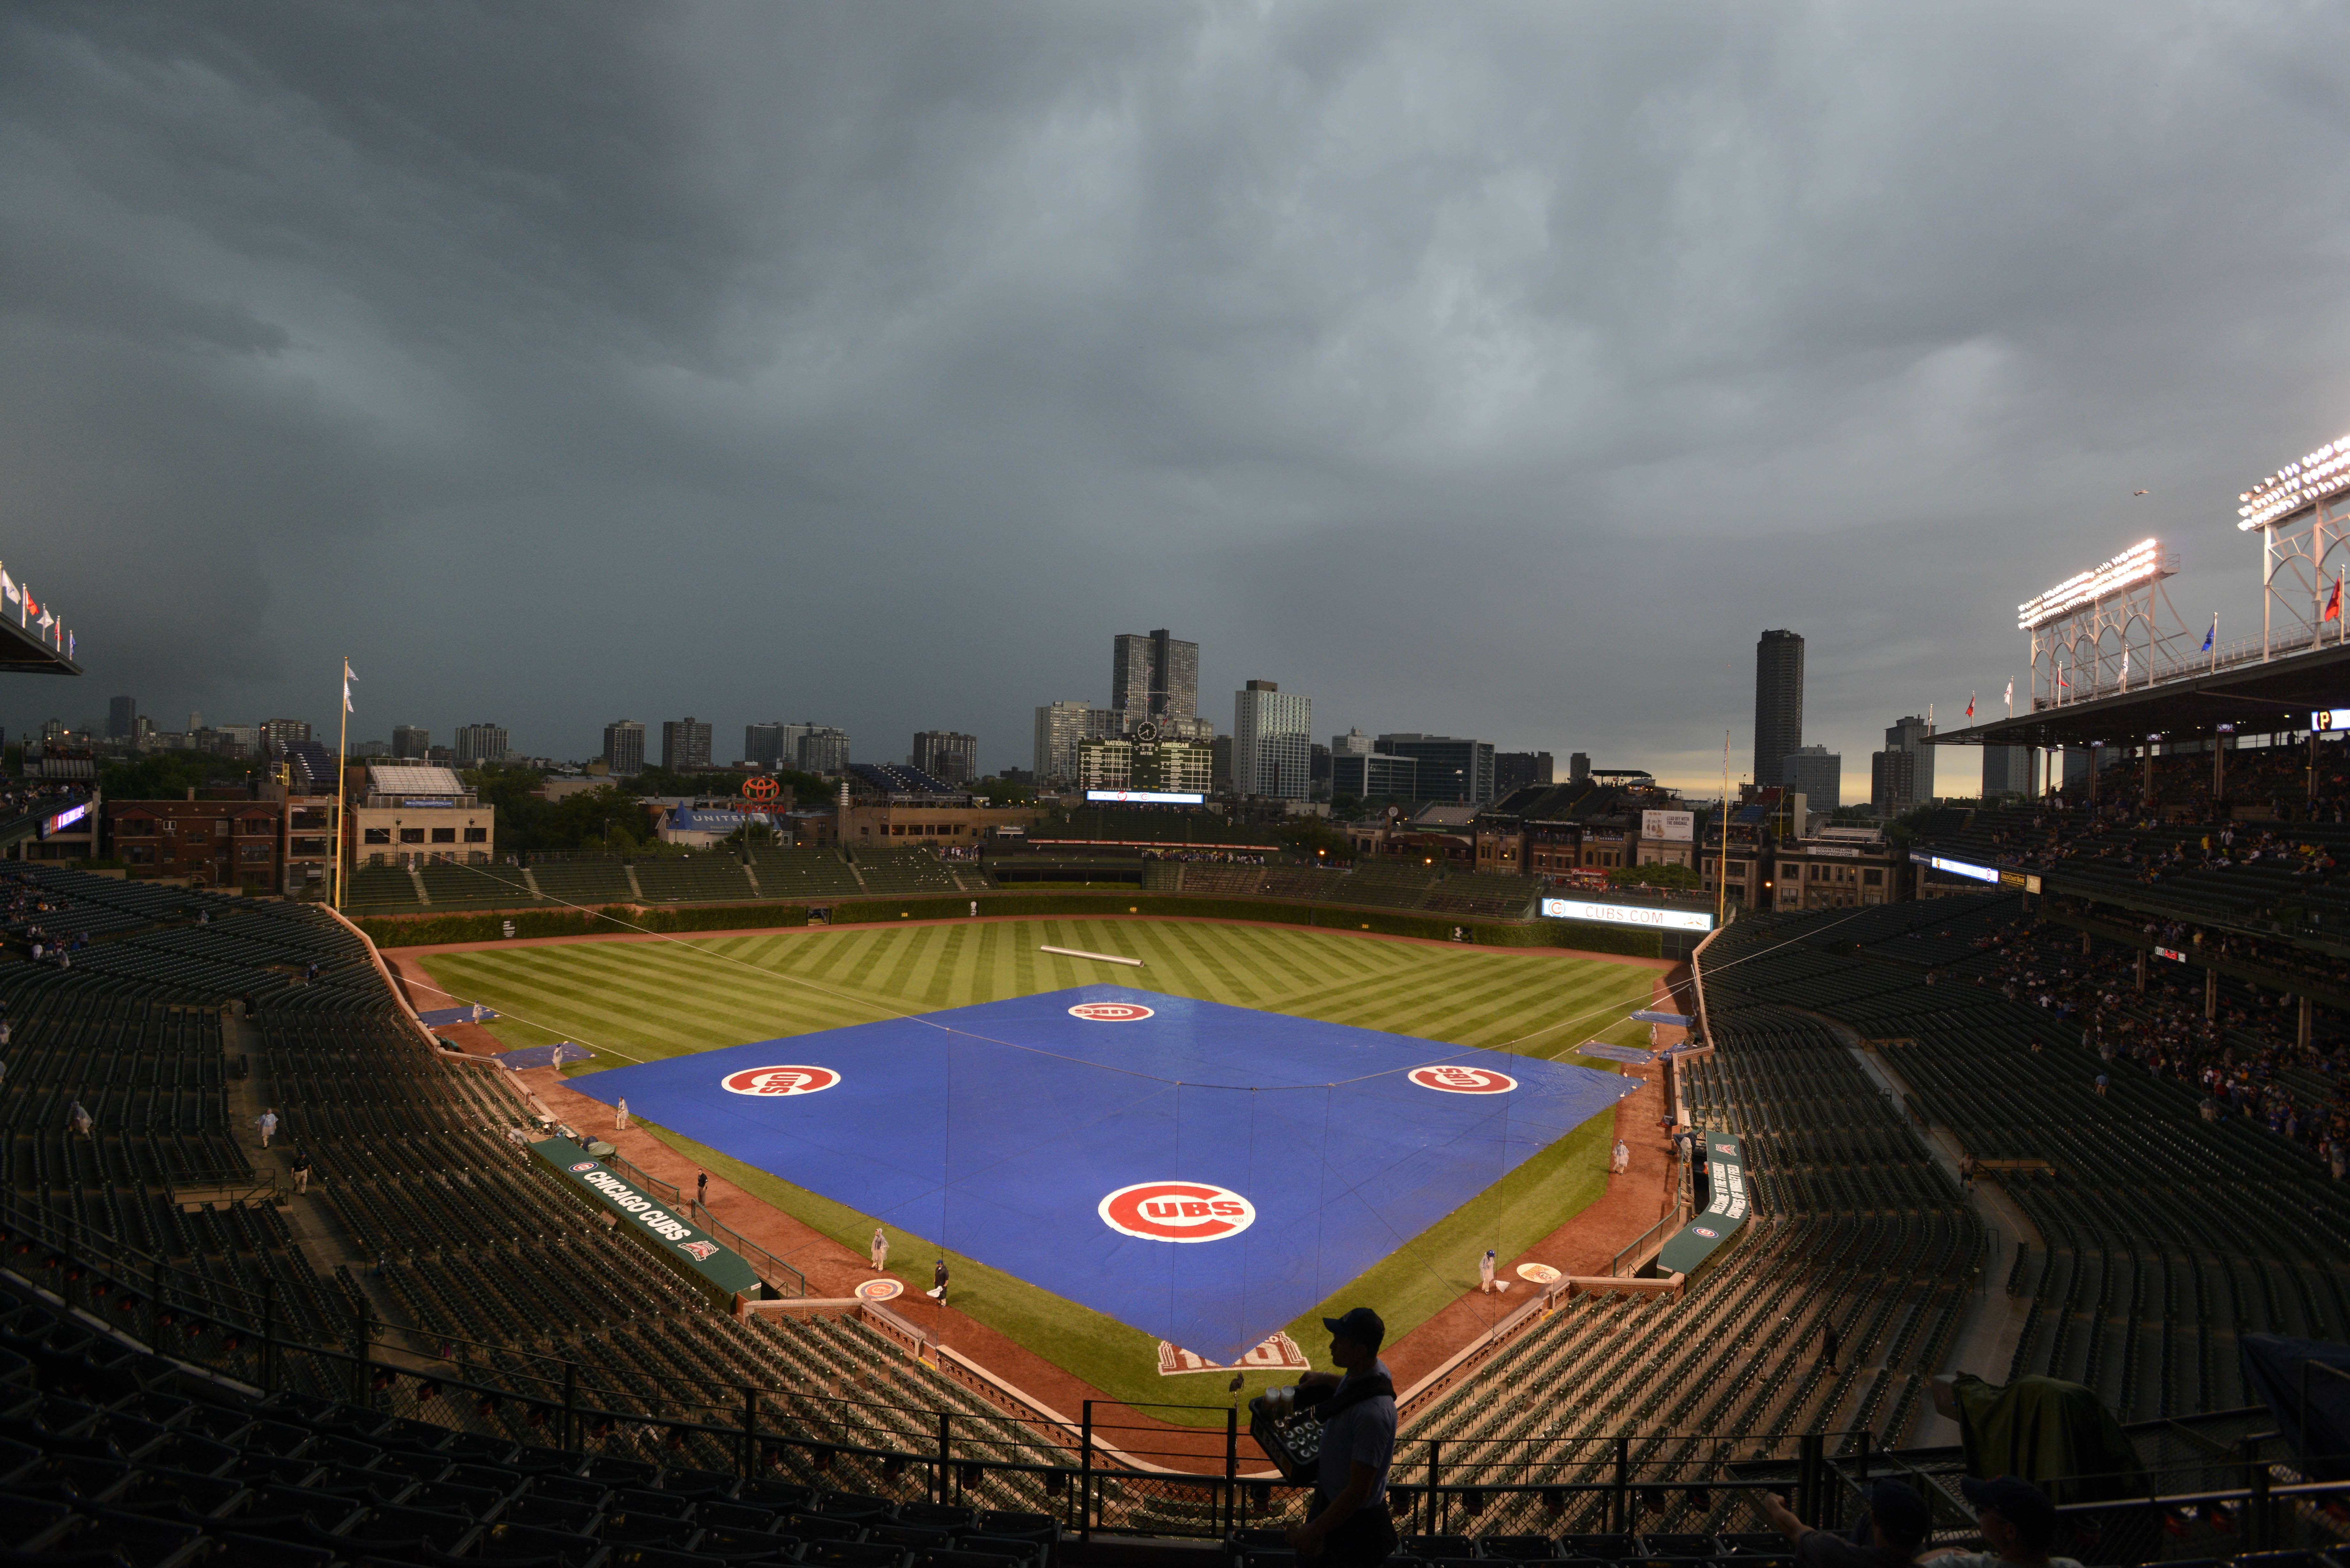 The tarp covers the infield as rain delays the start of a baseball game between the Chicago Cubs and Pittsburgh Pirates at Wrigley Field in Chicago, Saturday, June 21, 2014.